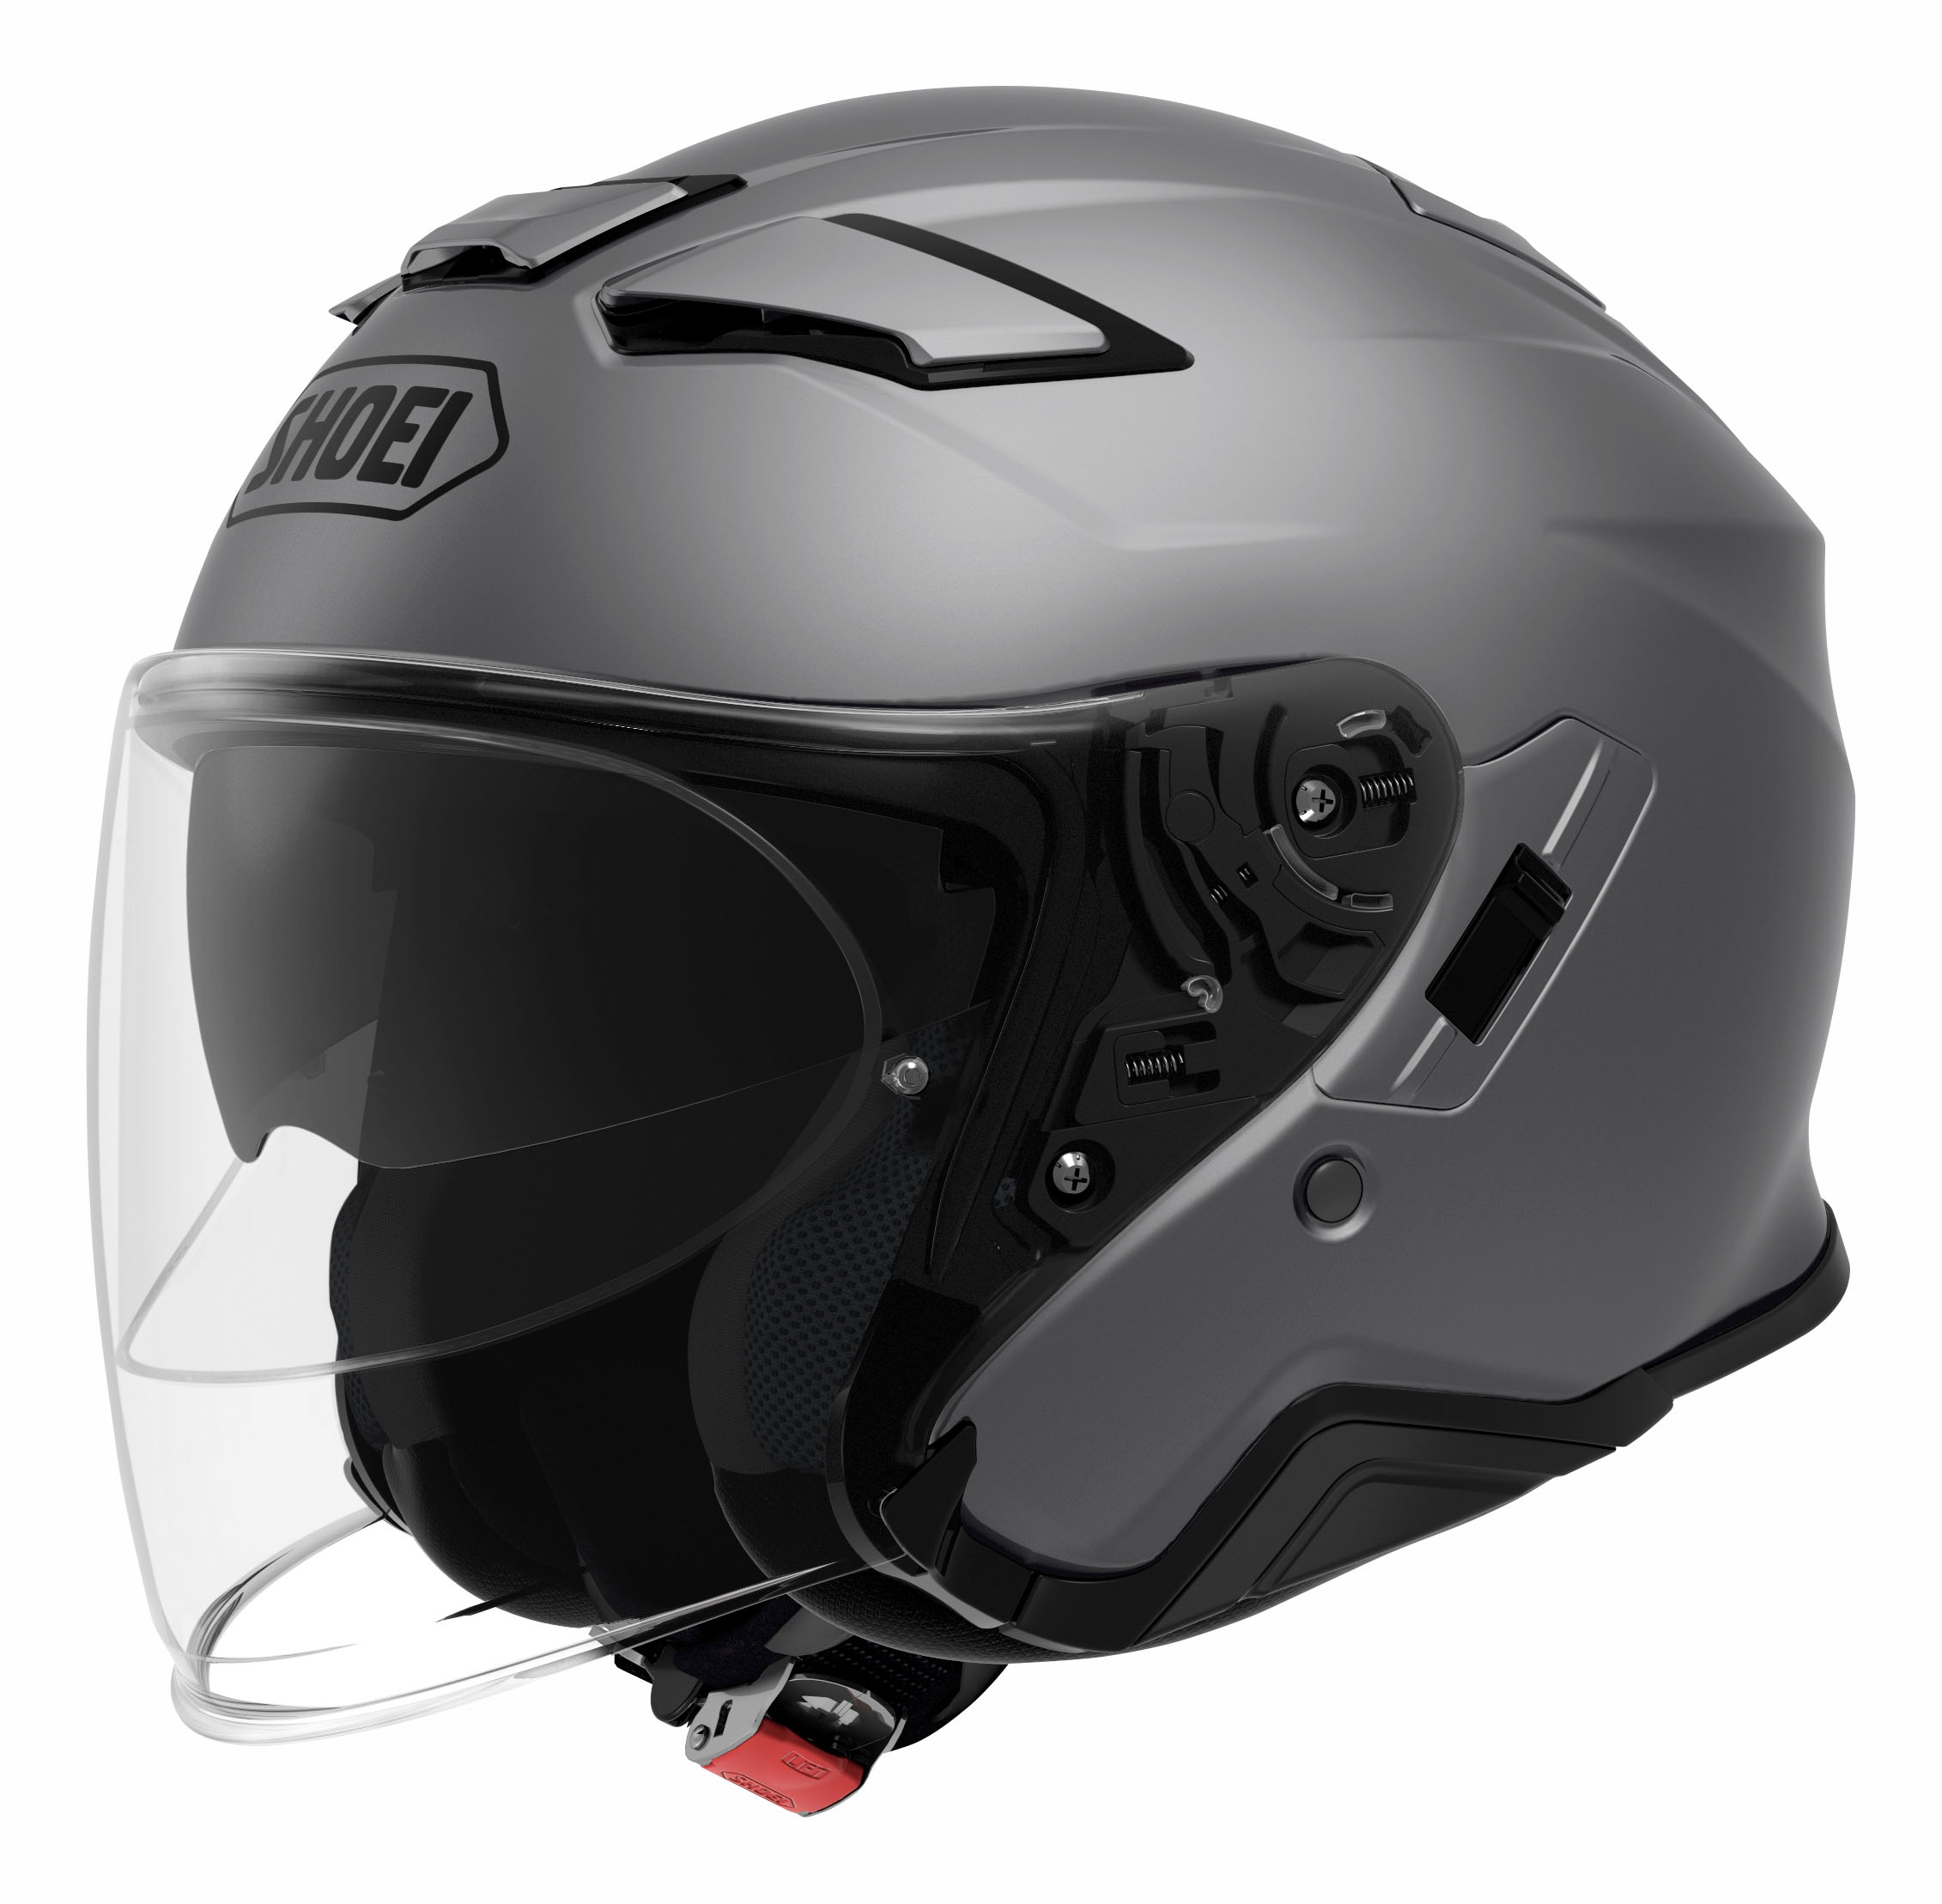 Shoei J-Cruise II Casco Jet Mate Gris Oscuro M